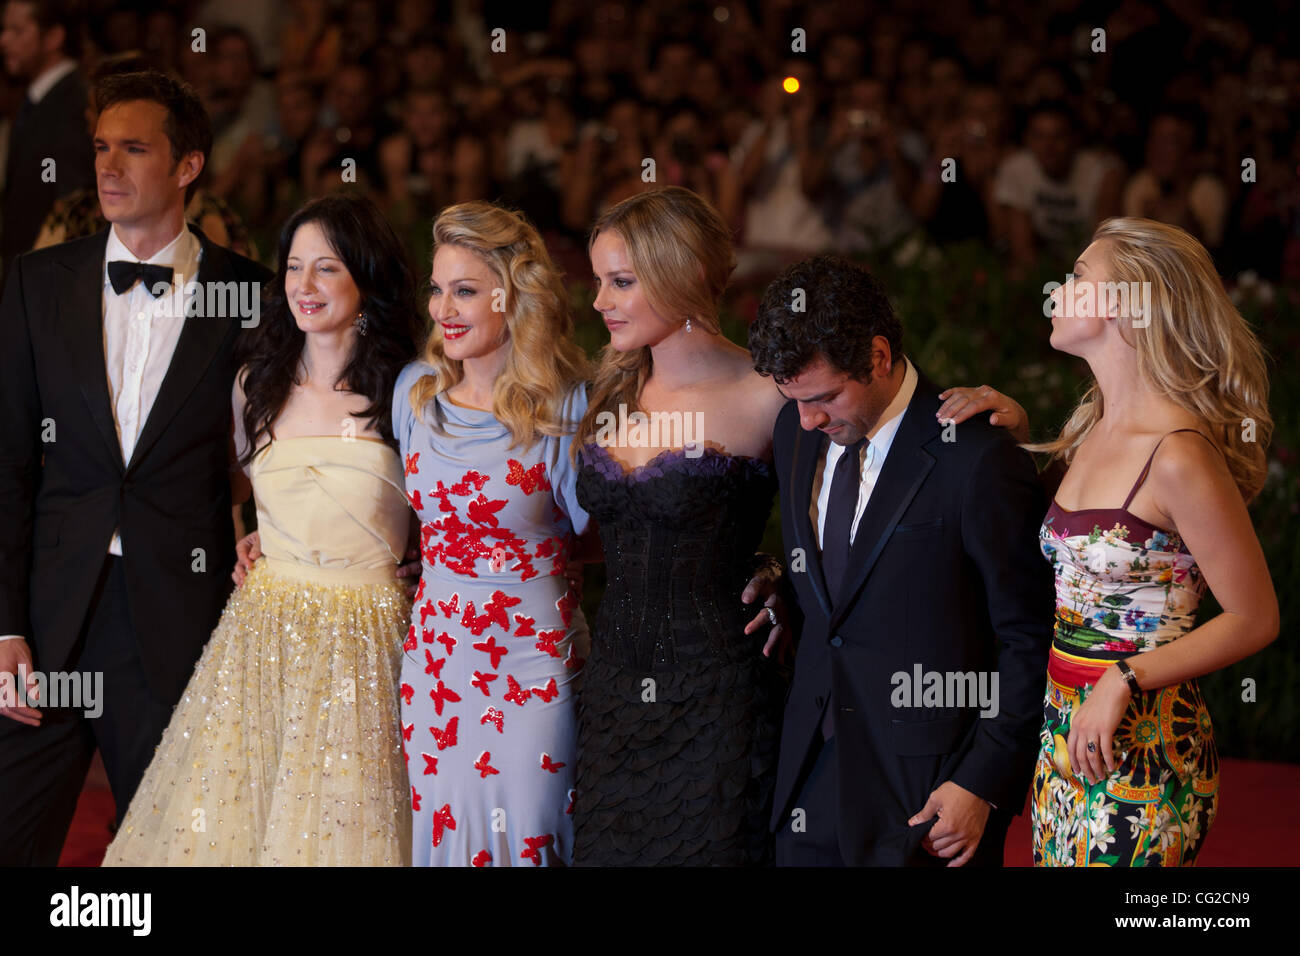 Sept  1, 2011 - Venice, Italy - Madonna with the cast of her movie